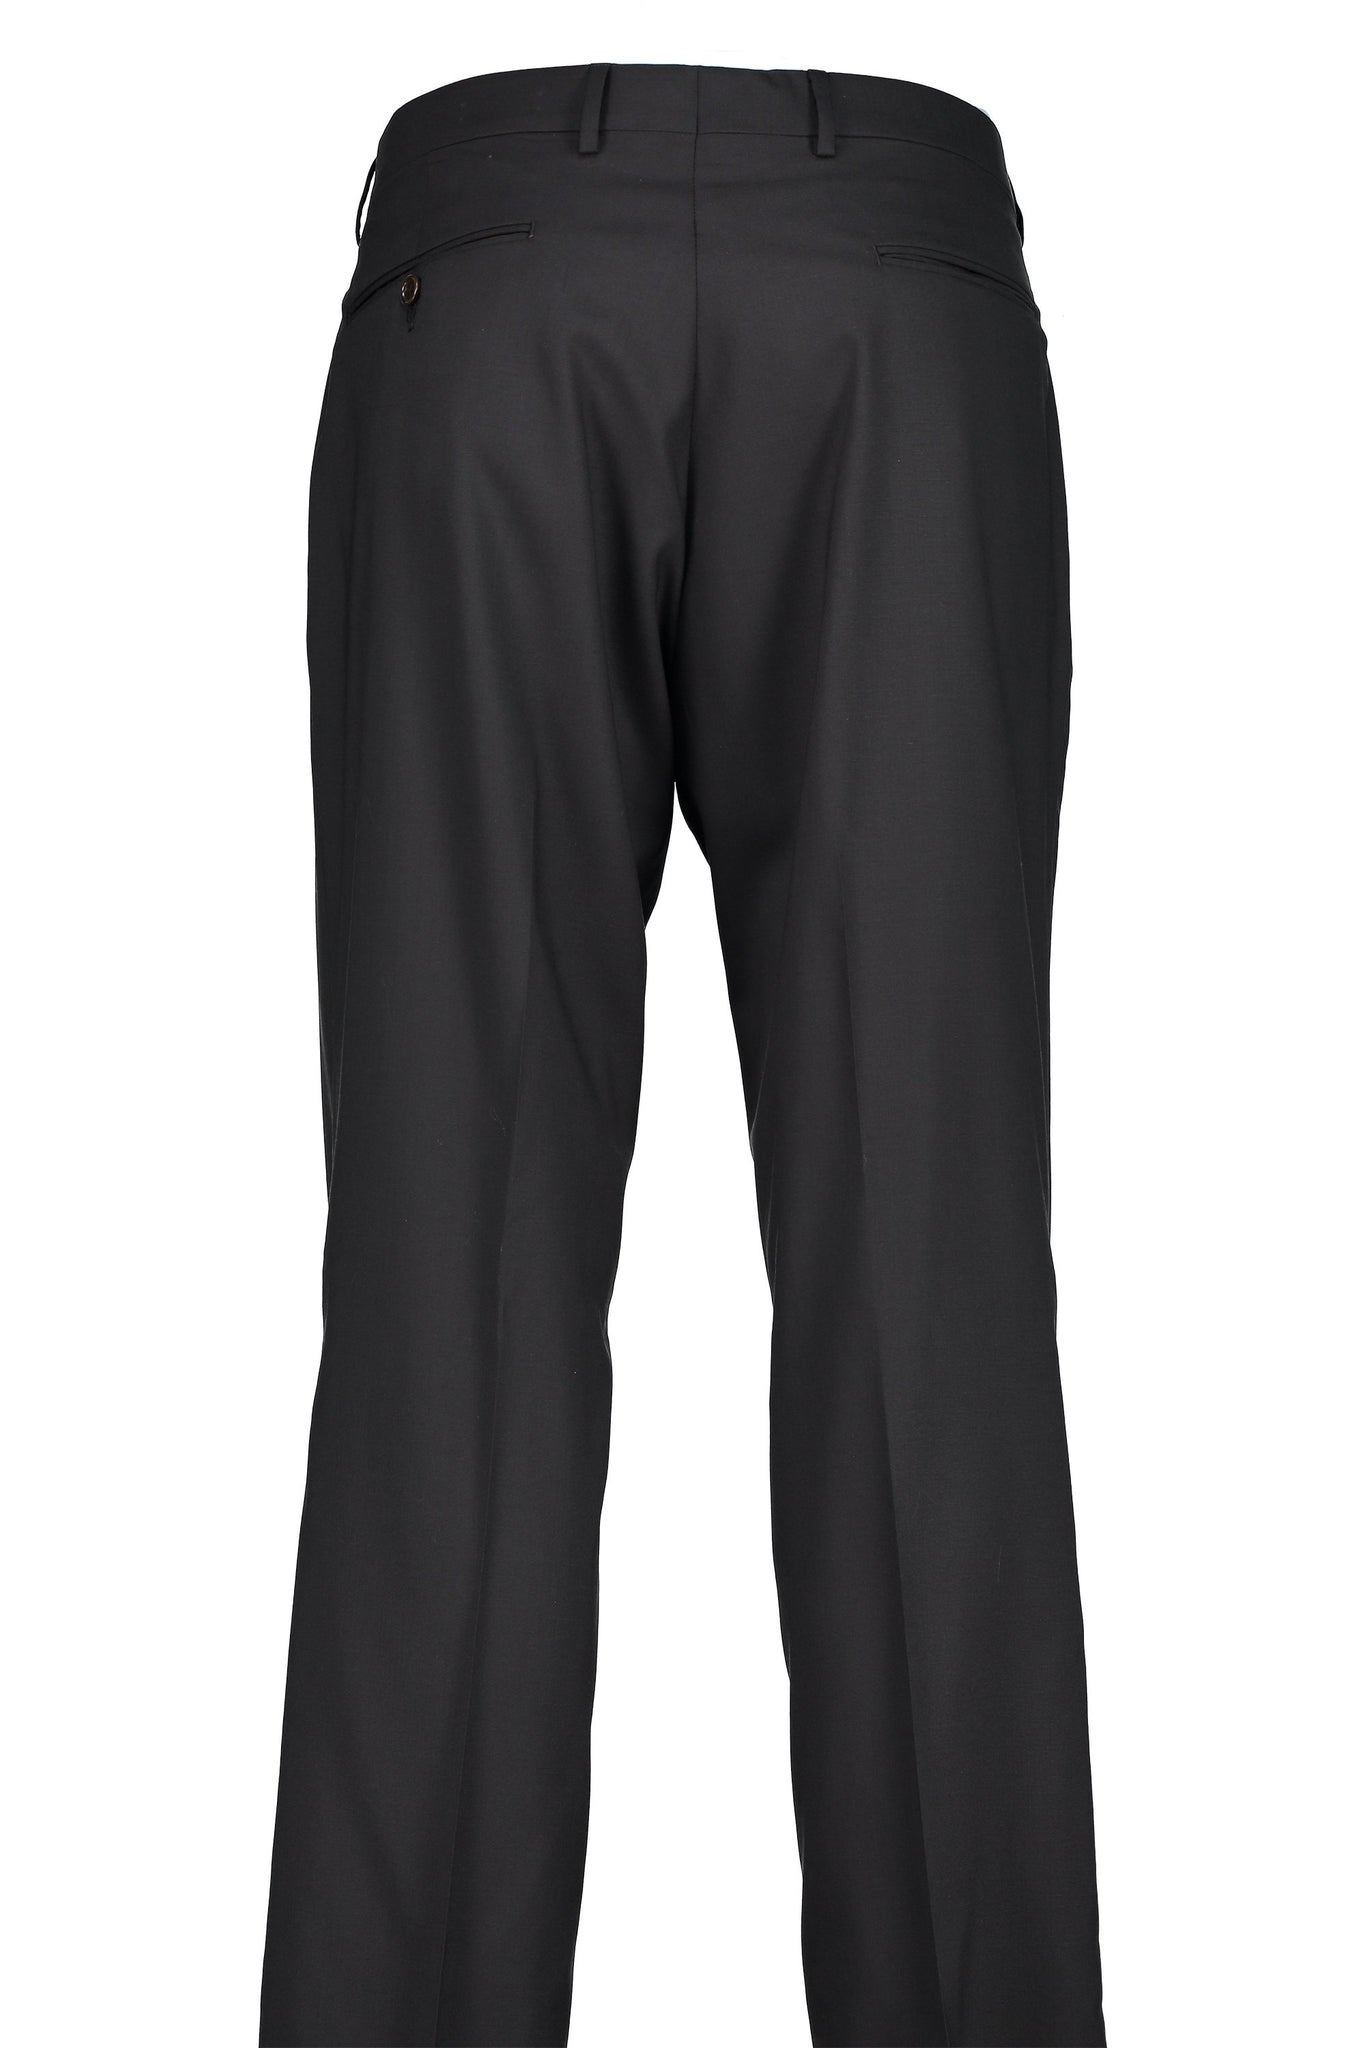 Classic Fit Black H-Tech Wool Suit Separate Flat Front Pants -  Hardwick.com